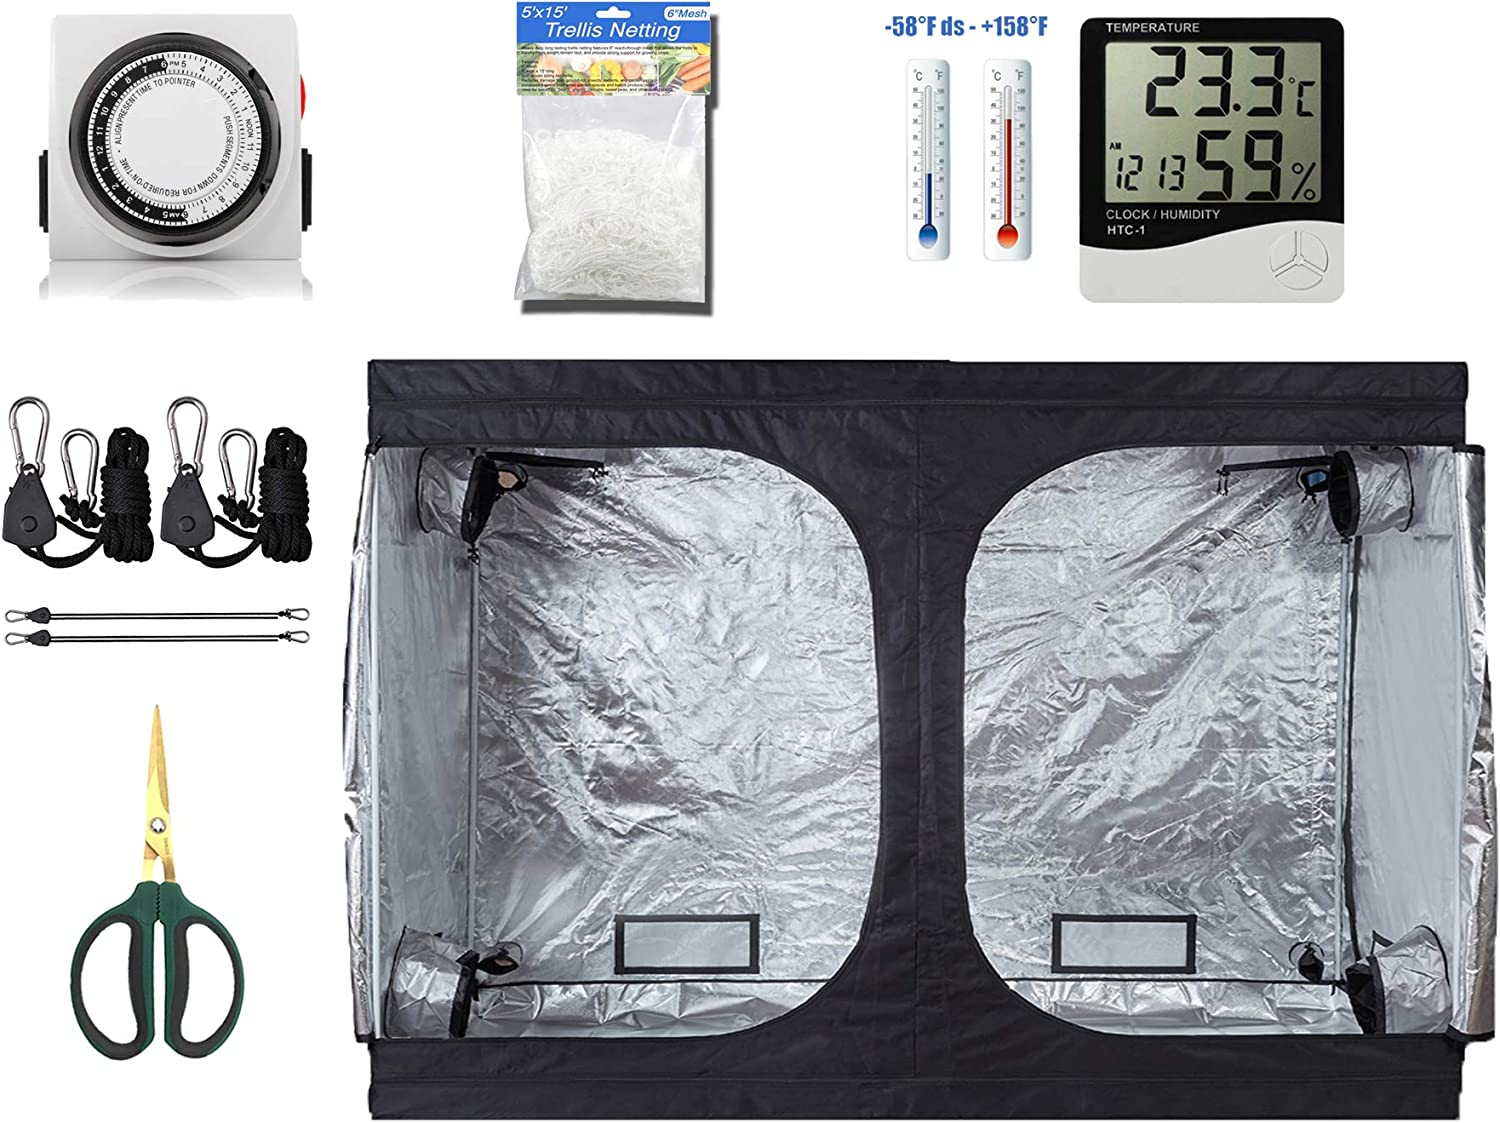 GreenHouser High Reflective Grow Tent Room 24 Hours Timer Hangers Temperature Humidity Bonsai Shears Netting Trellis for Hydroponics Indoor Planting System 120 x60 x80 Grow Tent Combo